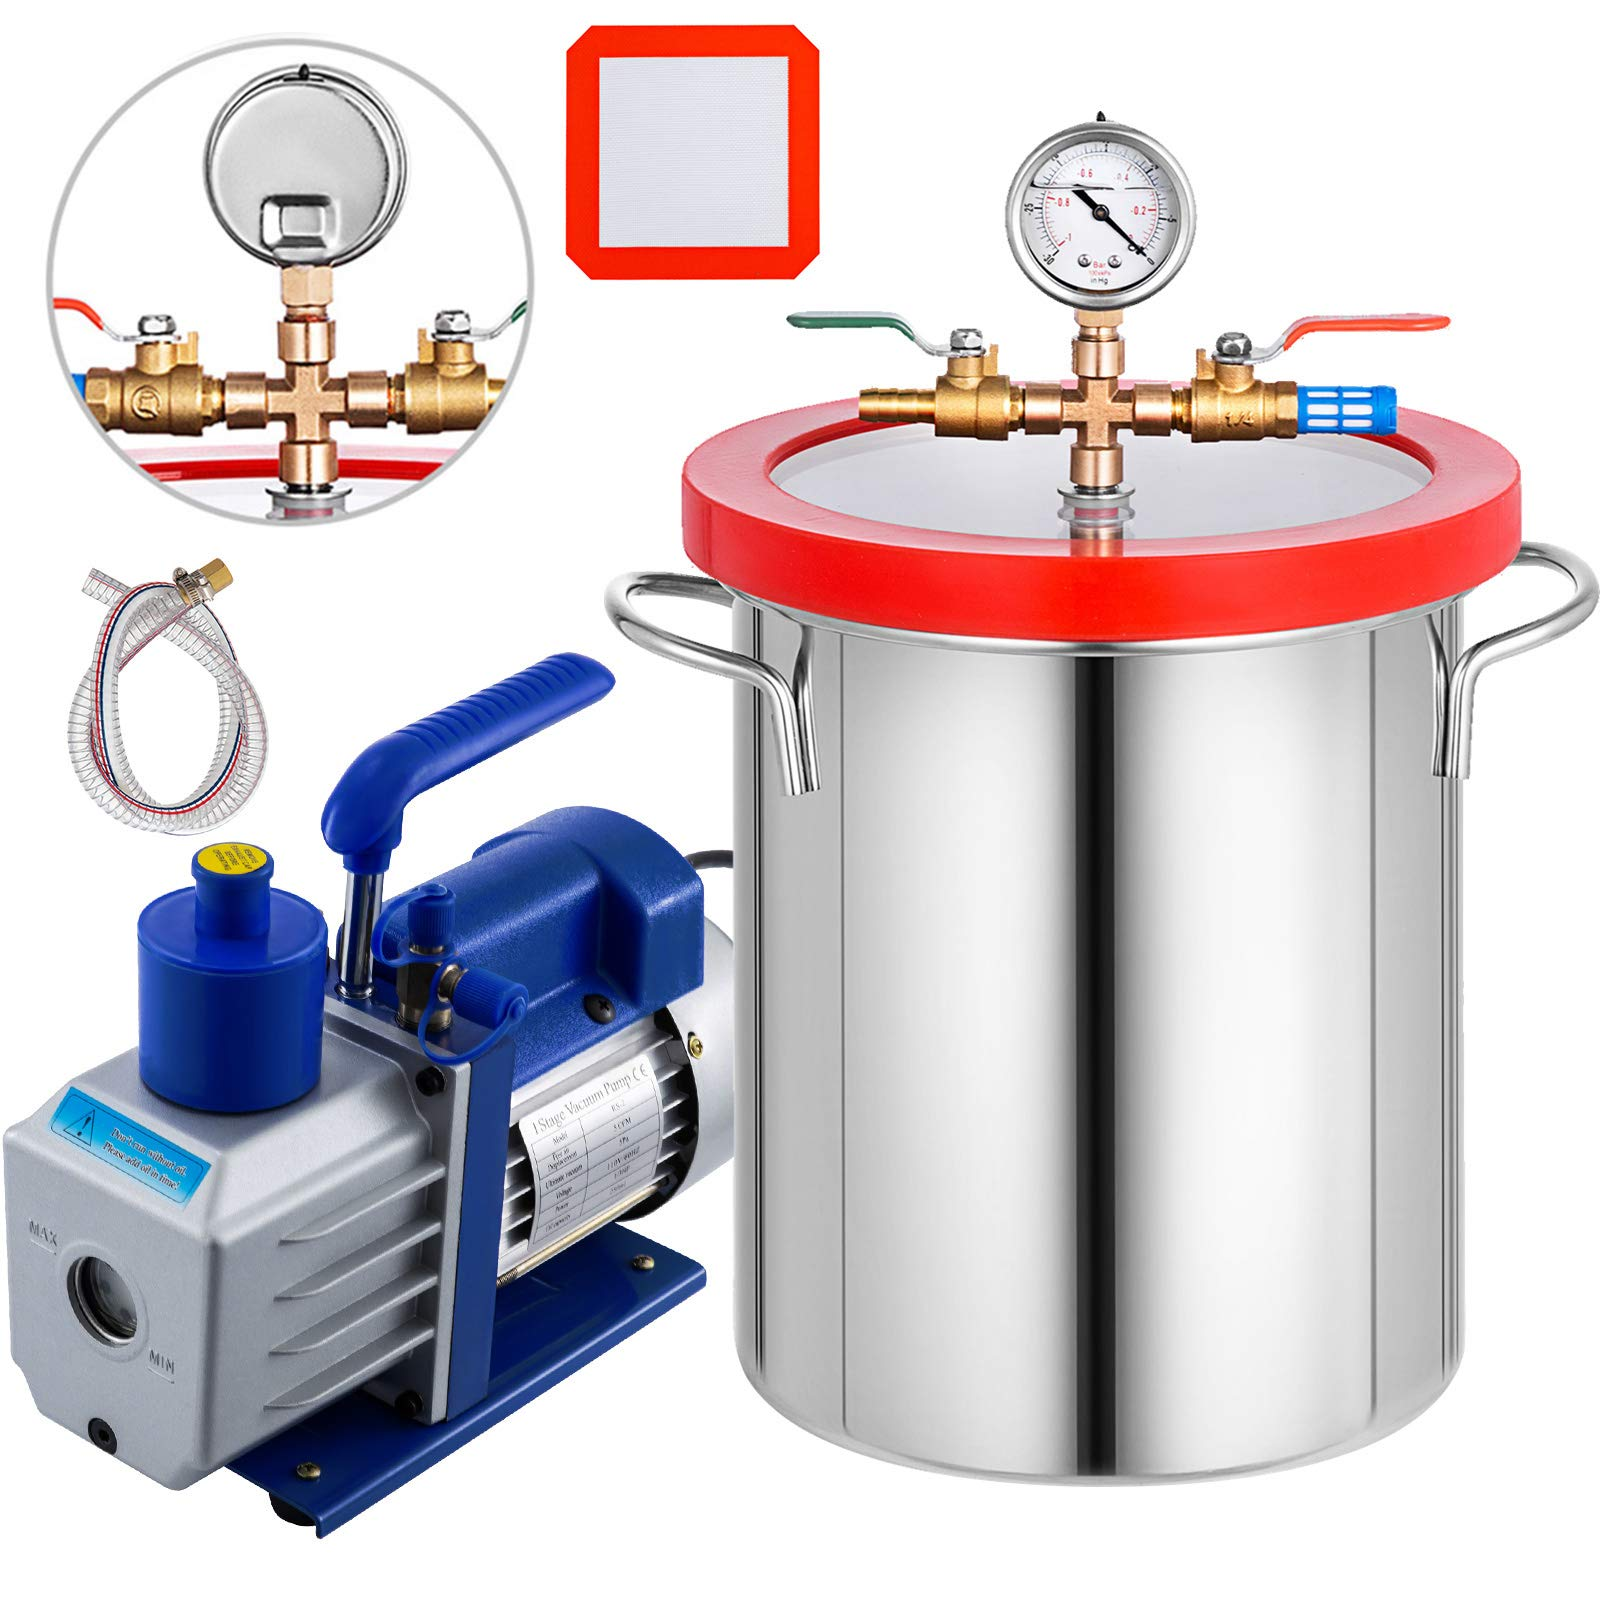 Bestauto 3 Gallon Vacuum Degassing Chamber Stainless Steel Degassing Chmaber 12L Vacuum Chamber Kit with 5CFM 1/3HP Single Stage Vacuum Pump(5CFM Vacuum Pump + 3 Gallon Vacuum Chamber) by Best In Auto